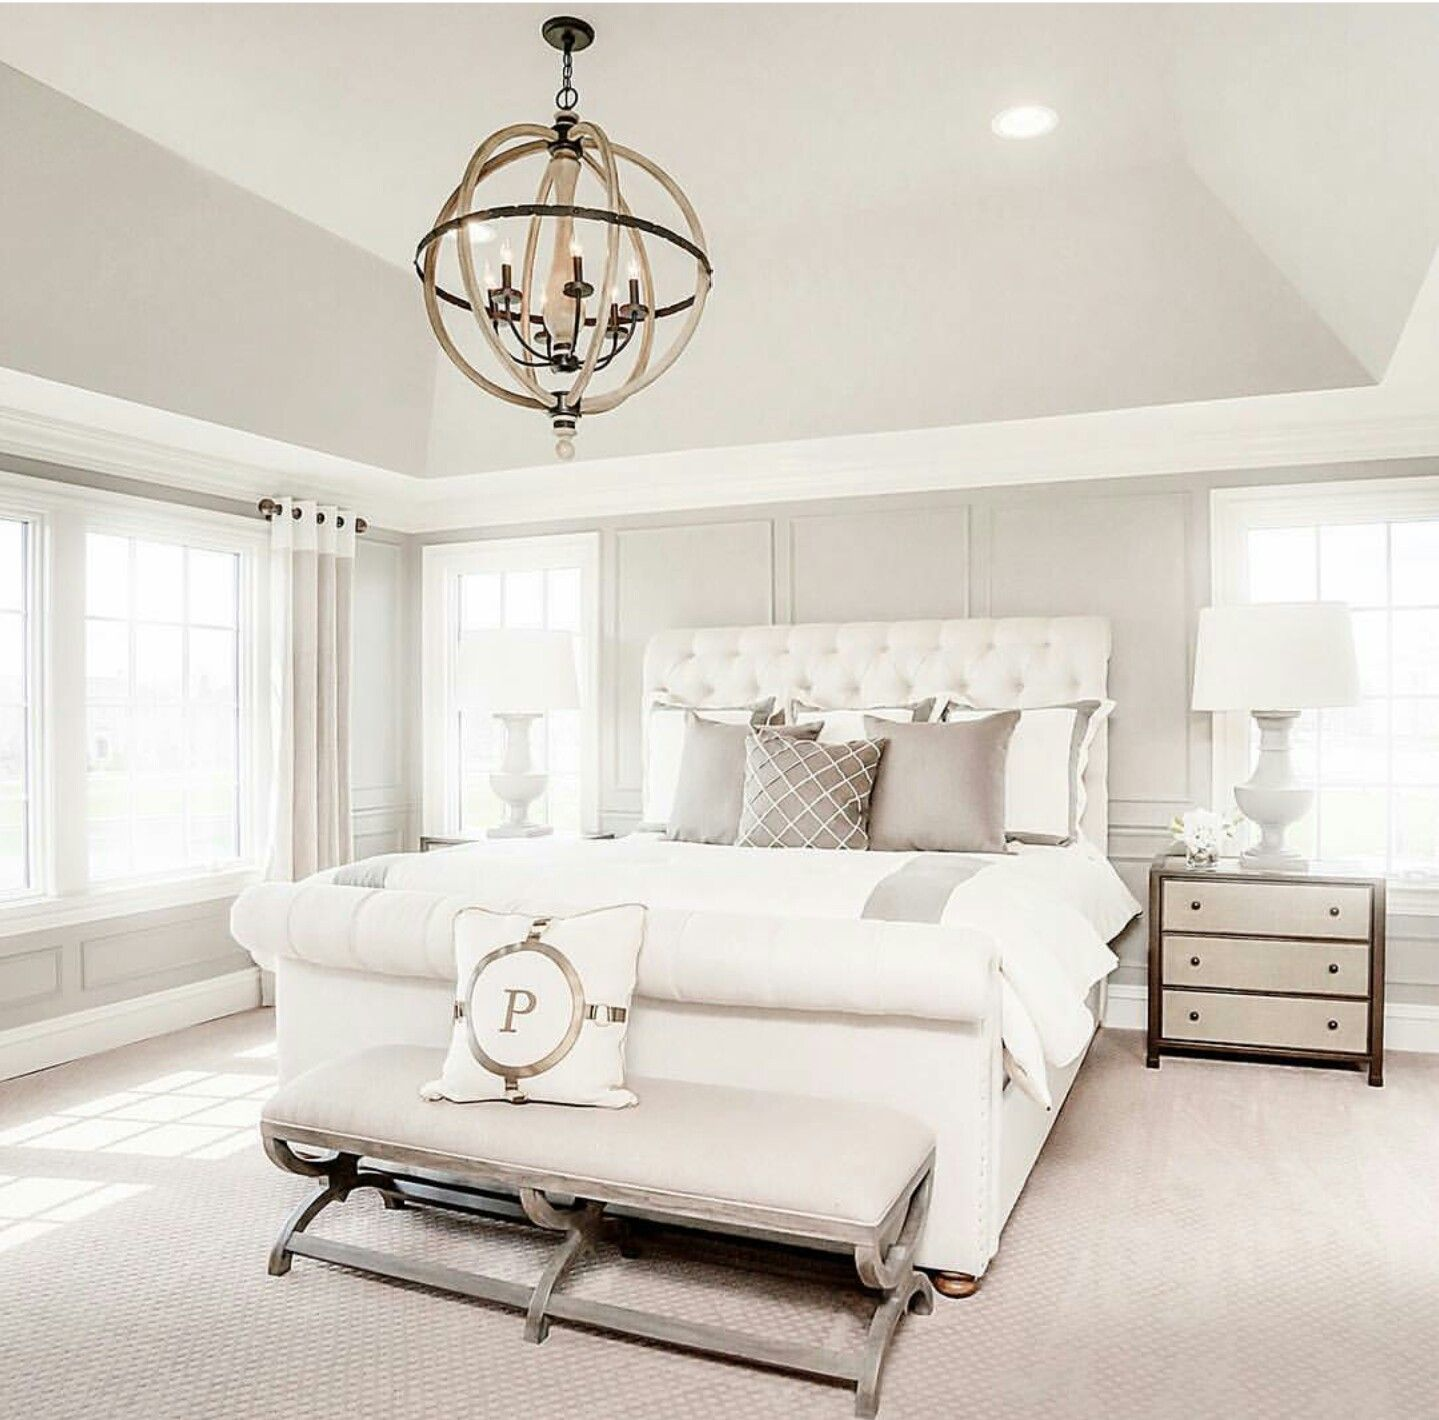 Best Pin By Lin Manzano On Dream House Master Bedroom 400 x 300